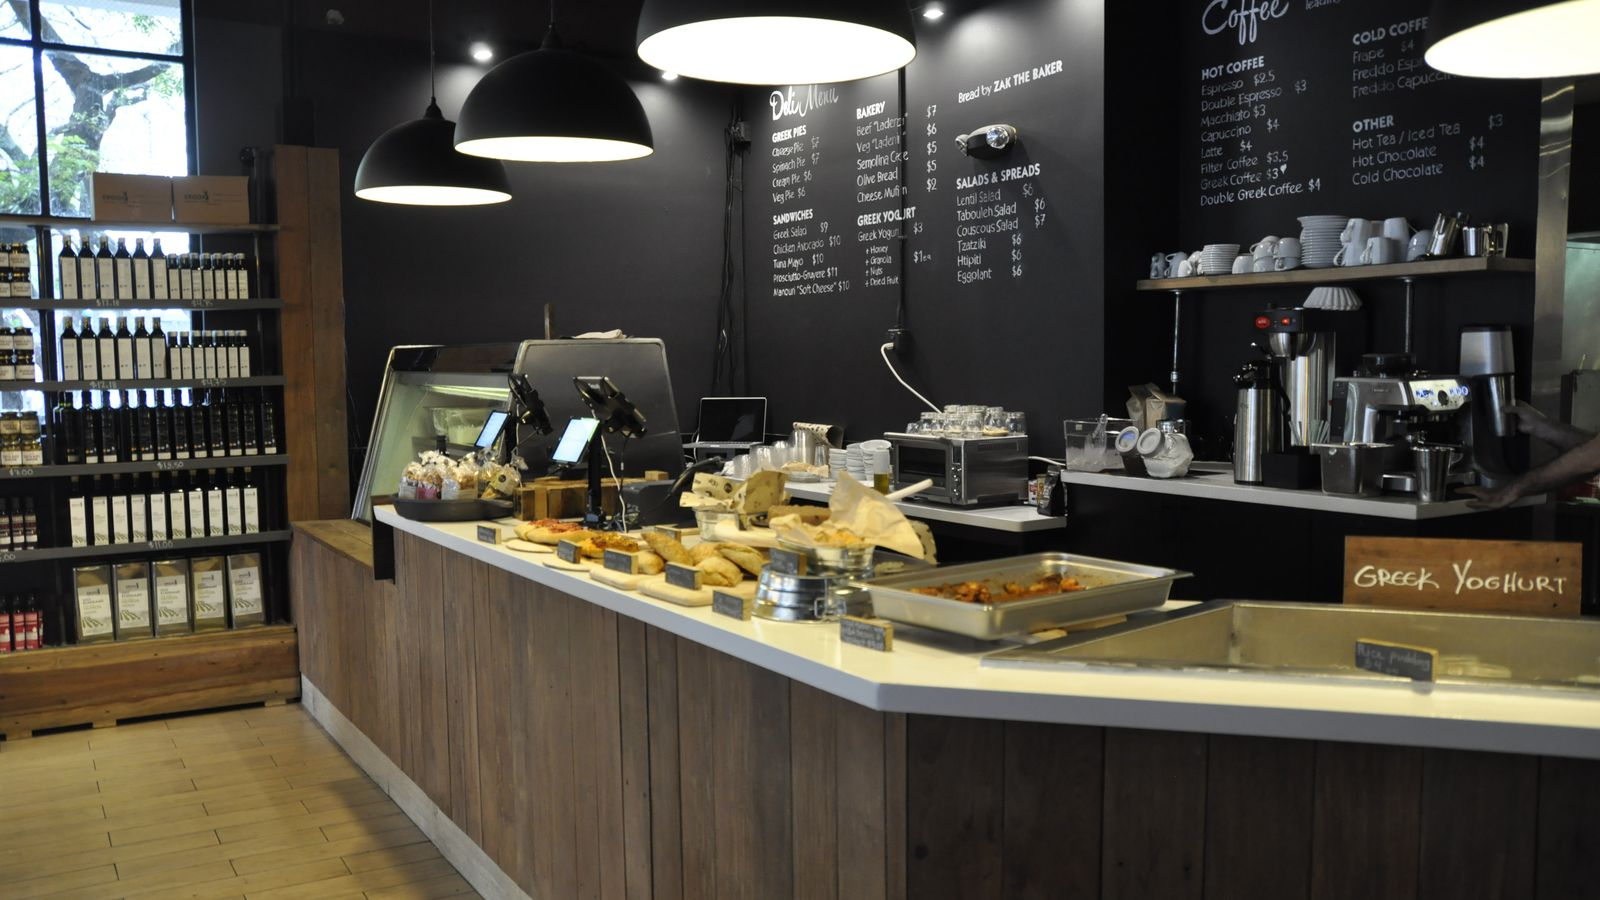 Fast casual greek concept ergon comes to south florida for Cafe le jardin bell lane london